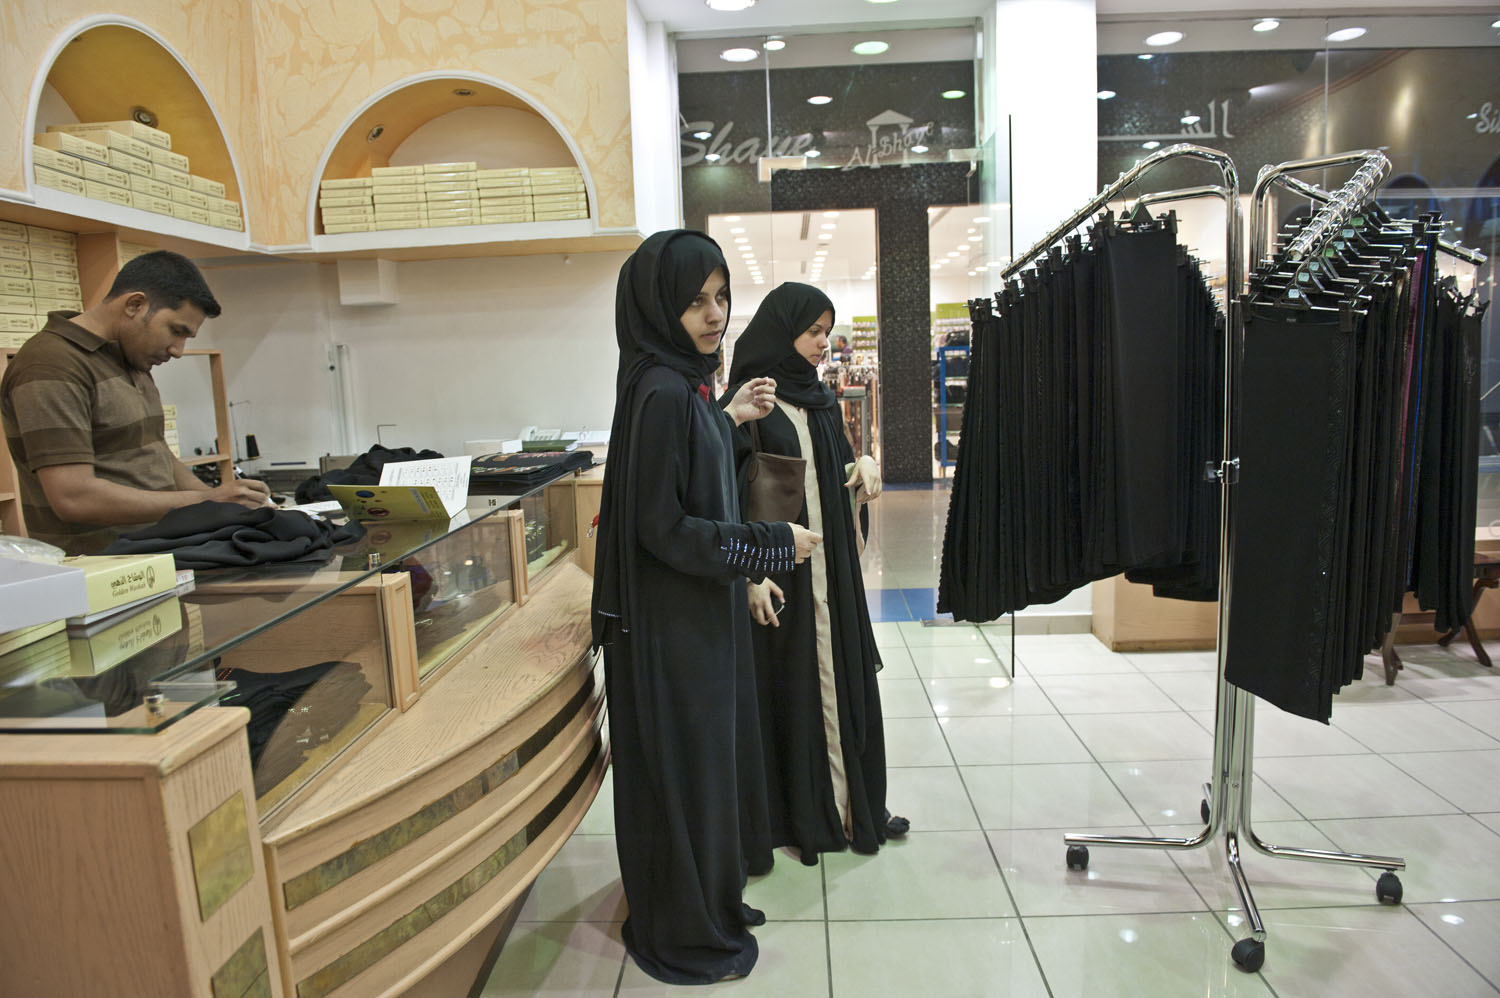 Saudi cousins Bayan, 20, and Seba, 19, shop for a new abaya for Seba in the Sahara mall in Riyadh, Saudi Arabia, June 11, 2011. There are few social spaces for singles and families to gather in Riyadh outside of malls, and many families and young people spend evenings lingering at one of dozens of malls around the city.